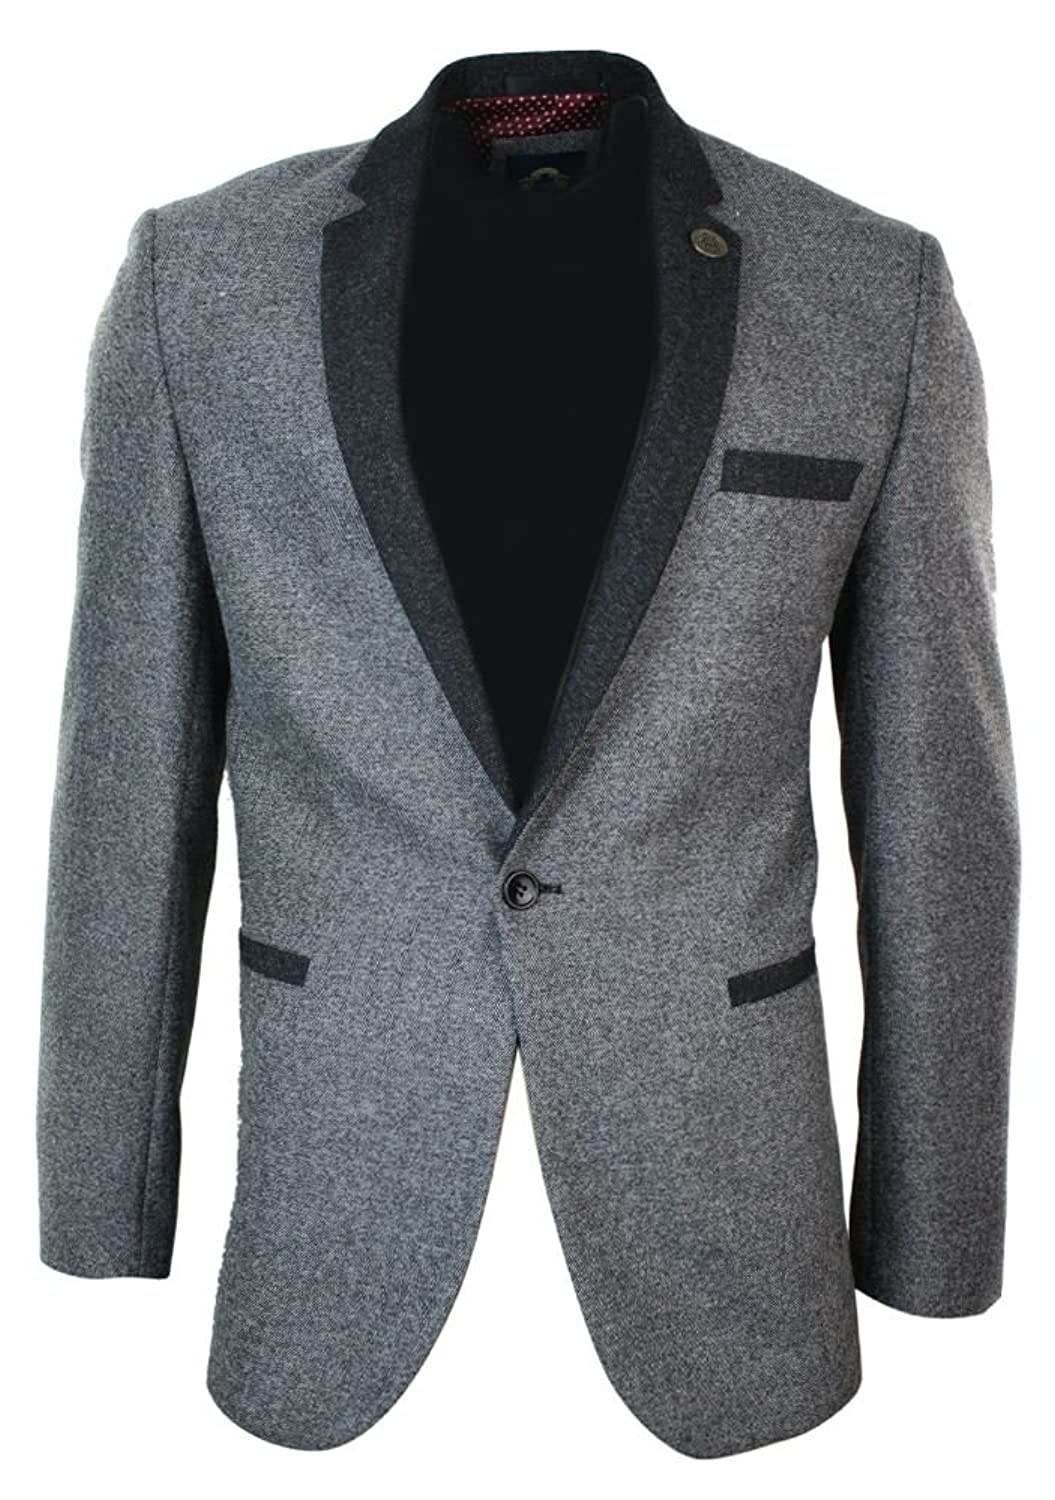 Mens Grey Blazer Jacket Herringbone Tweed 1 Button Fitted Smart Casual